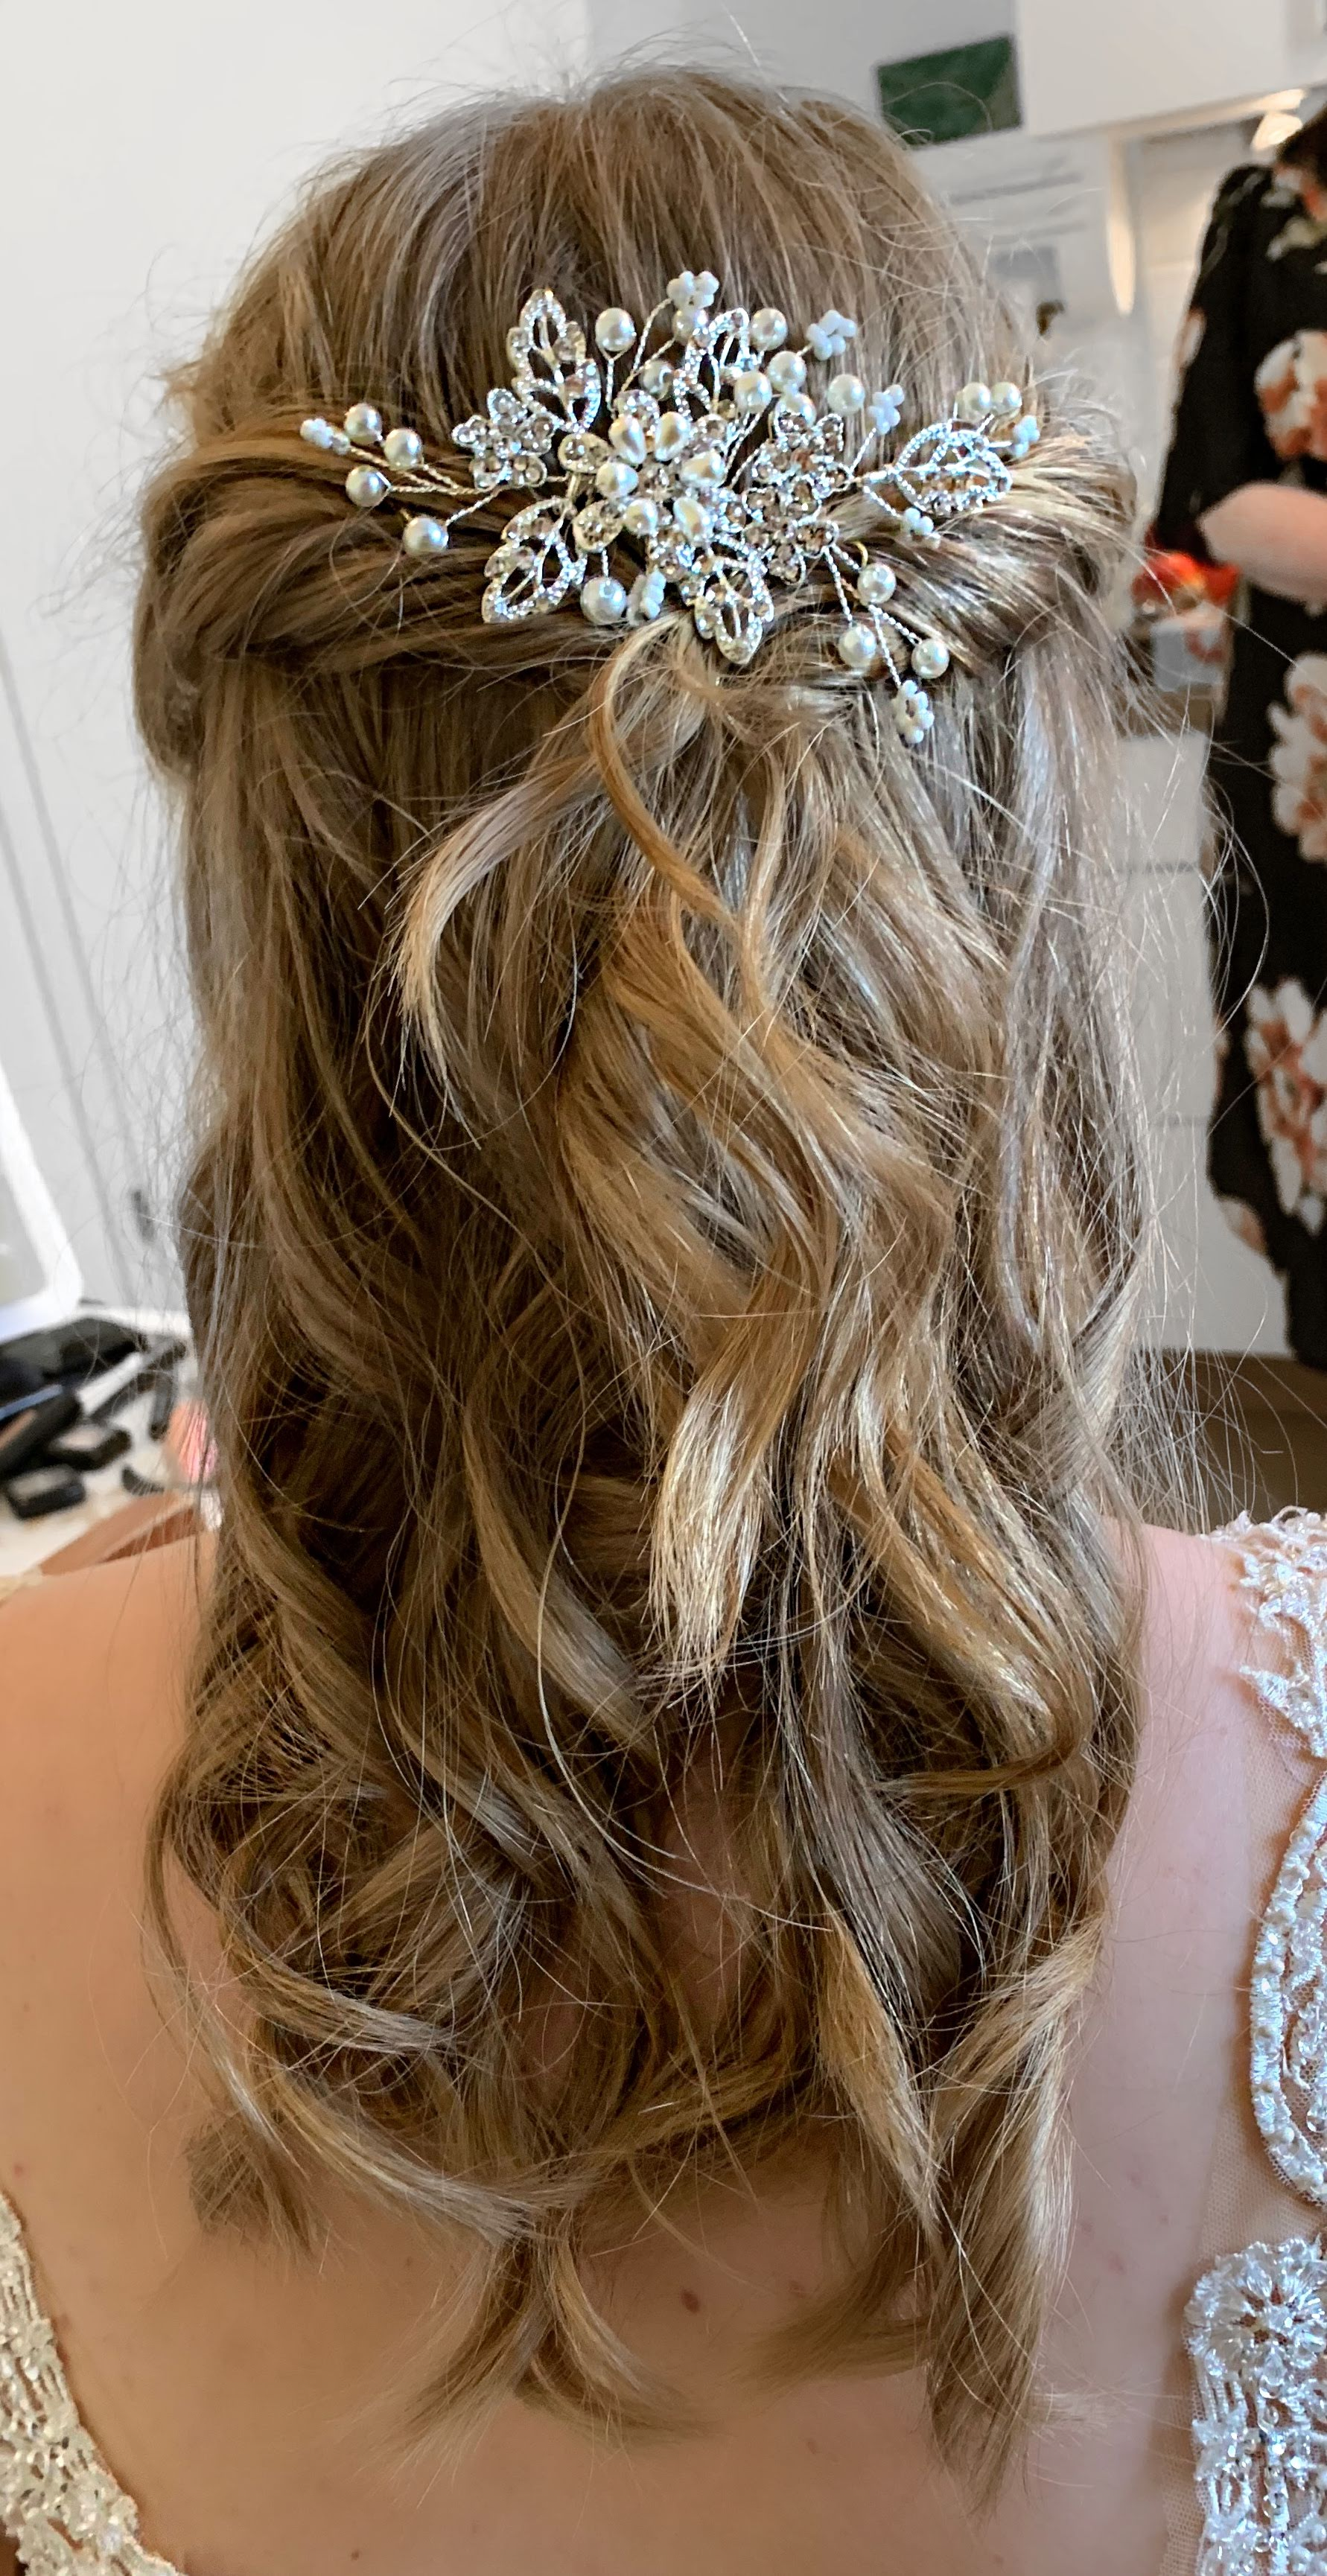 Hairstyle Braut